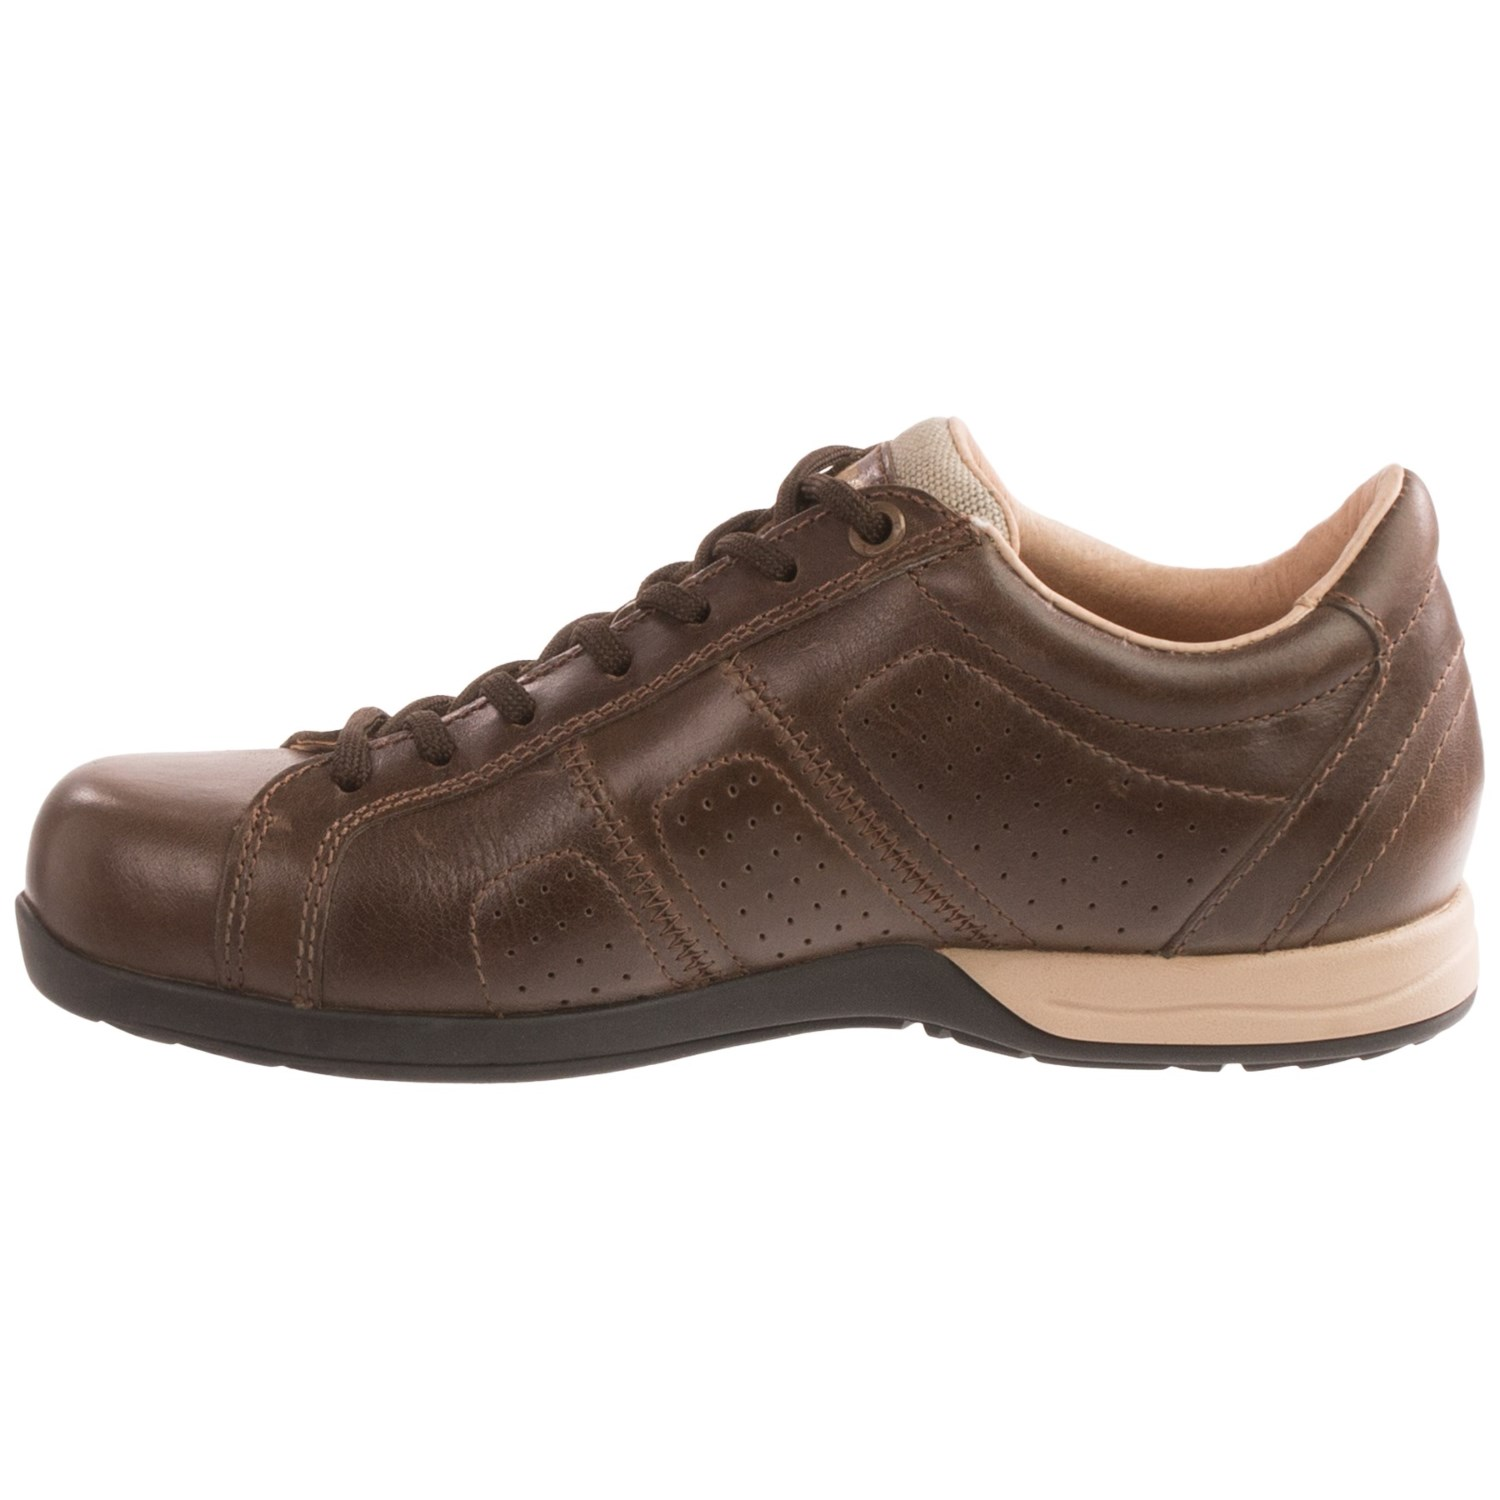 9063g 4 lowa lapalma shoes for